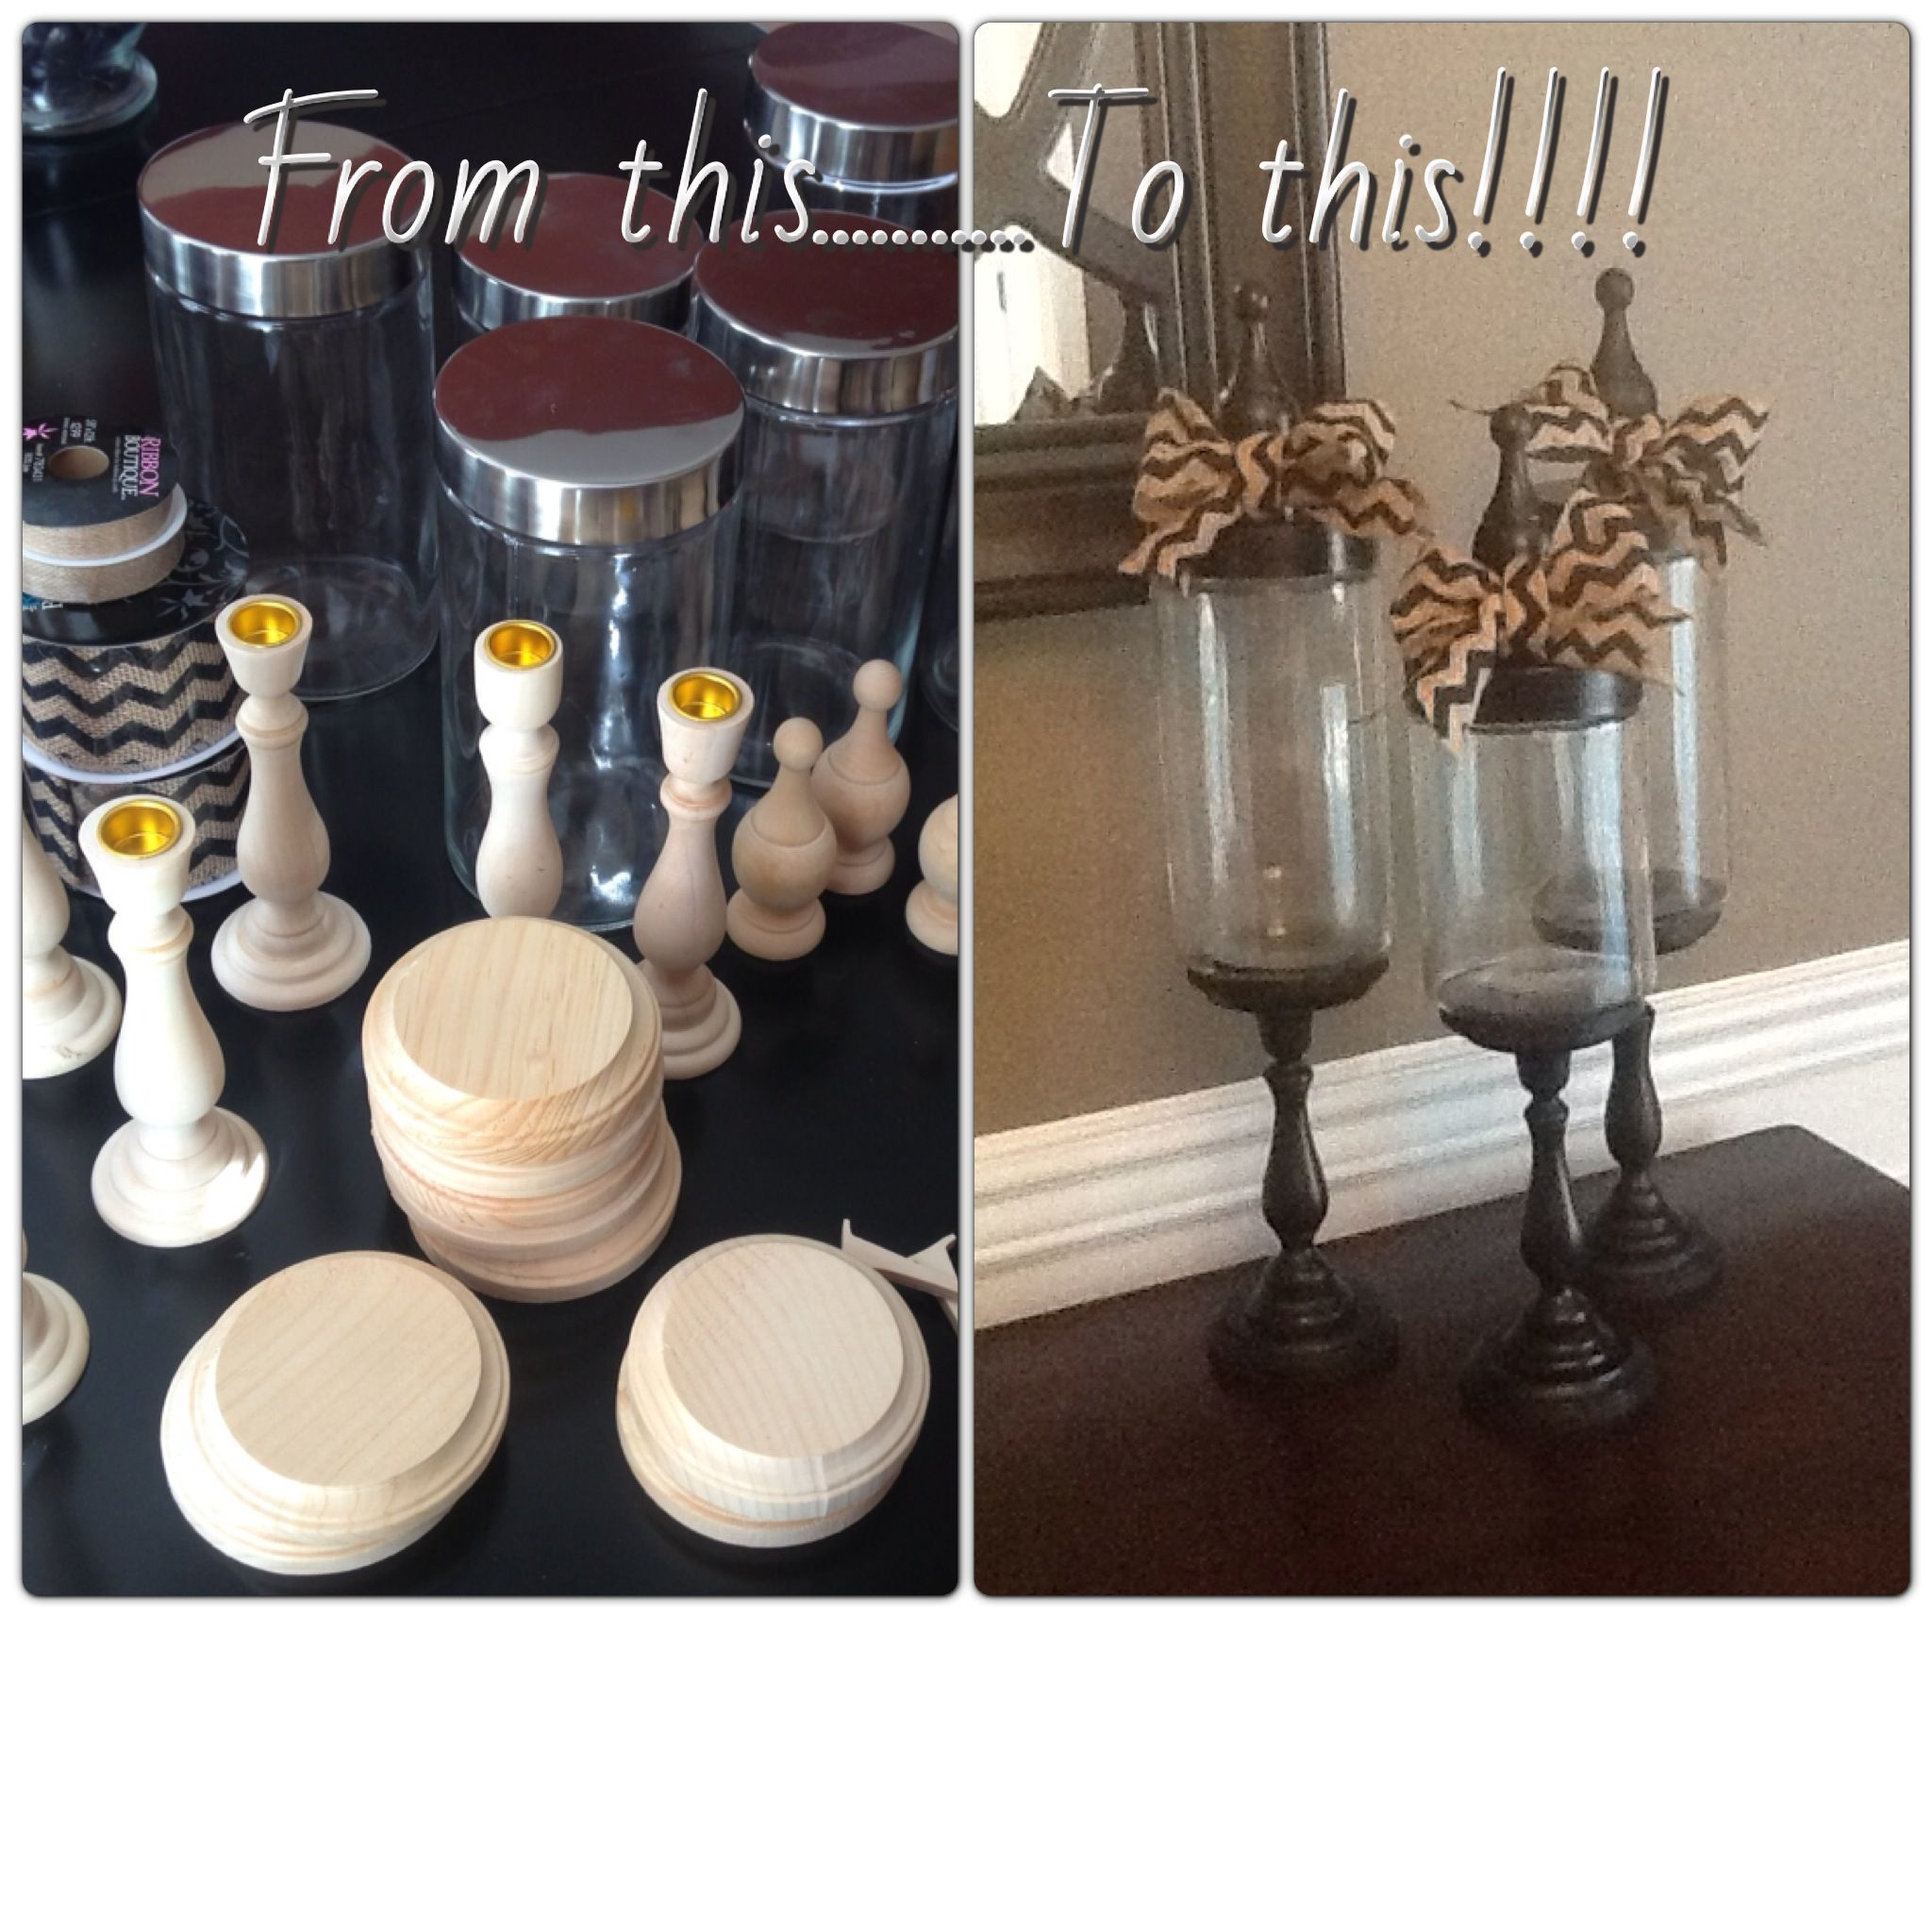 Hobby Lobby Wooden Hearts - All supplies from hobby lobby 3 unfinished wood candle sticks 6